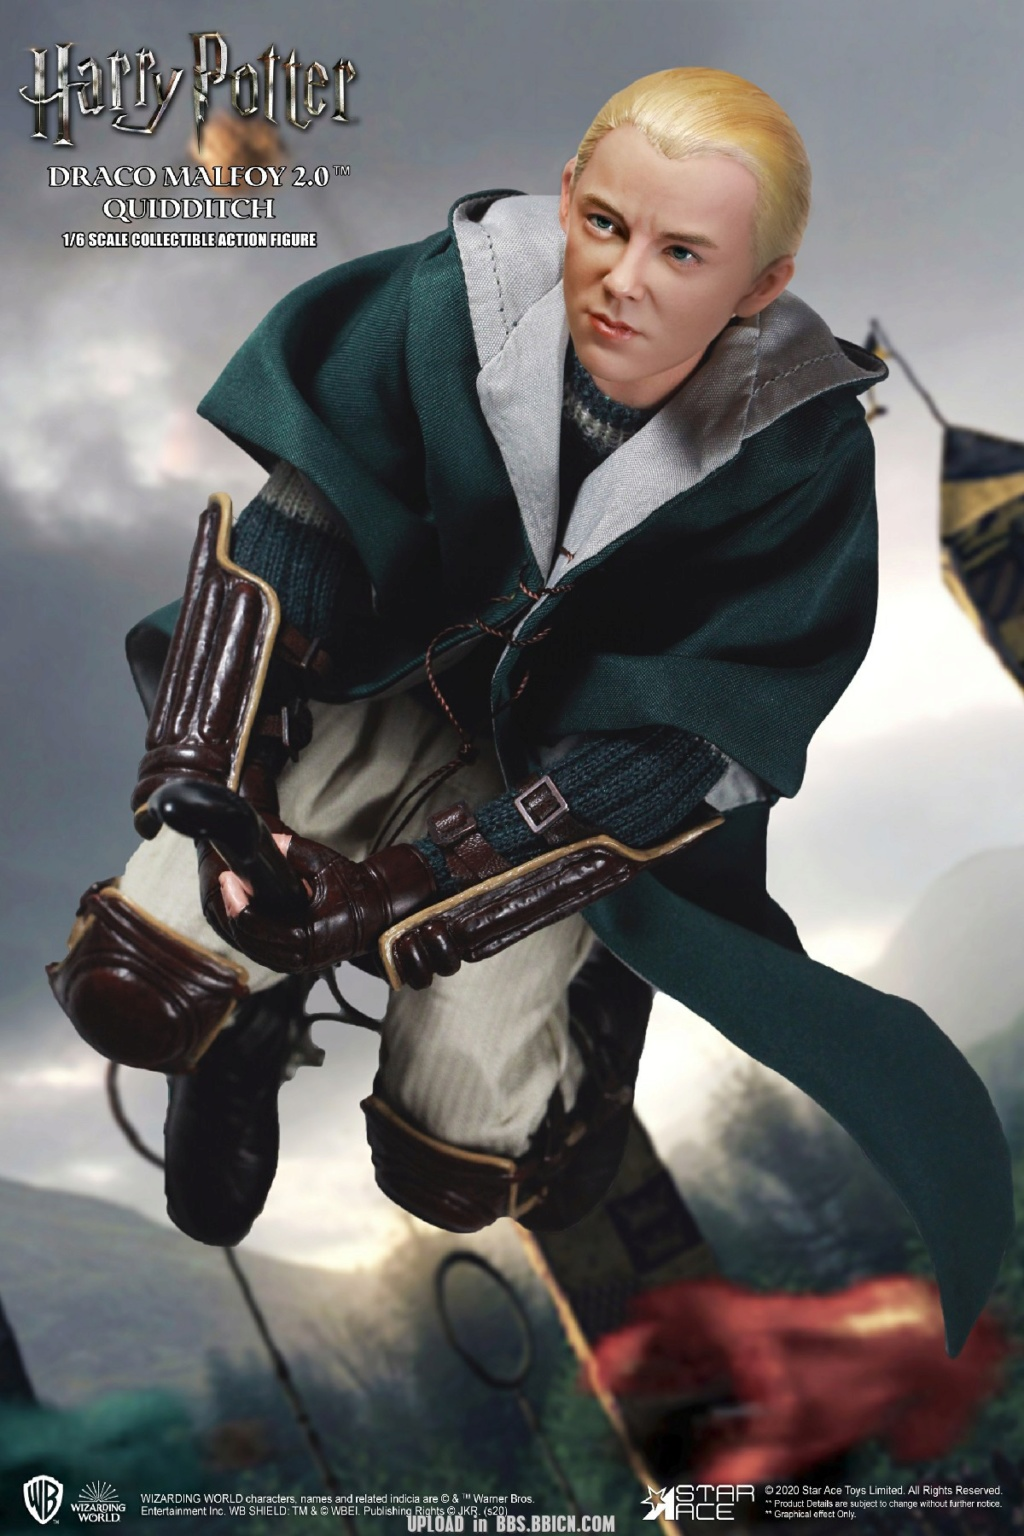 DracoMalfoy2 - NEW PRODUCT: STAR ACE Toys: 1/6 Harry Potter + Malfoy 2.0 Playing Set & Single & Uniform Edition 17063810